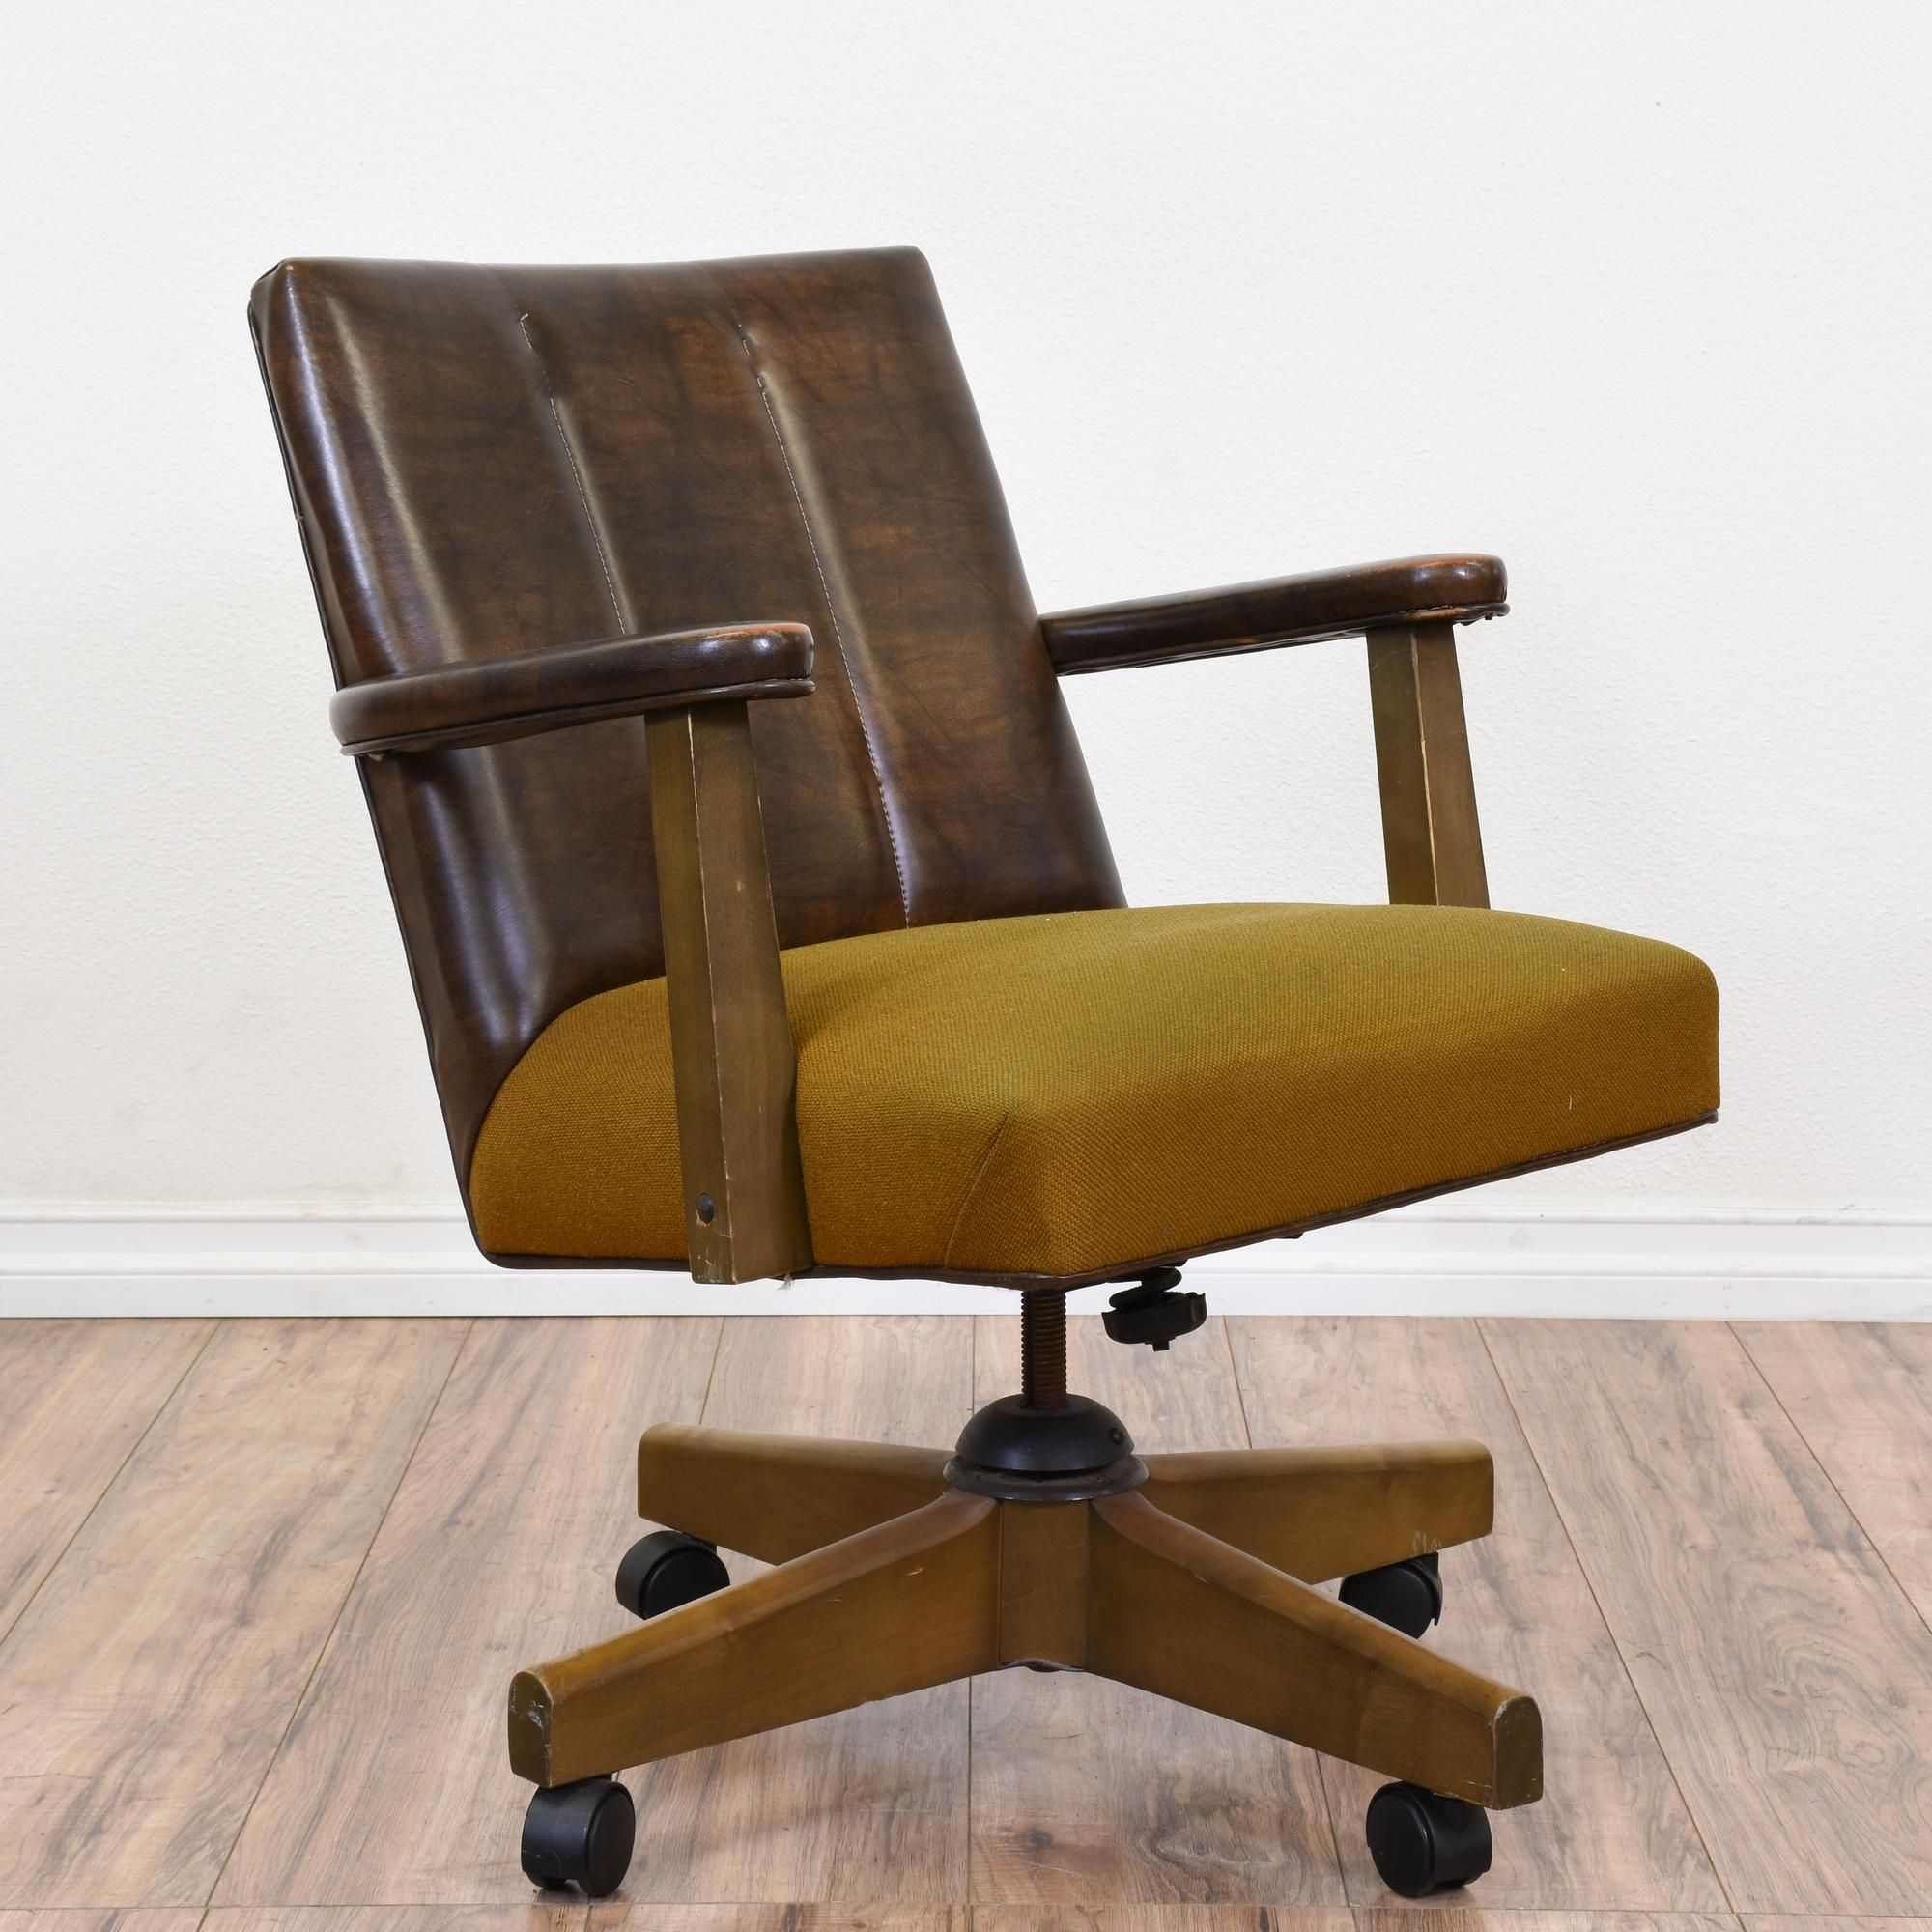 Office Chairs With Arms And Wheels Retro Mid Century Modern Rolling Office Chair Modern Office